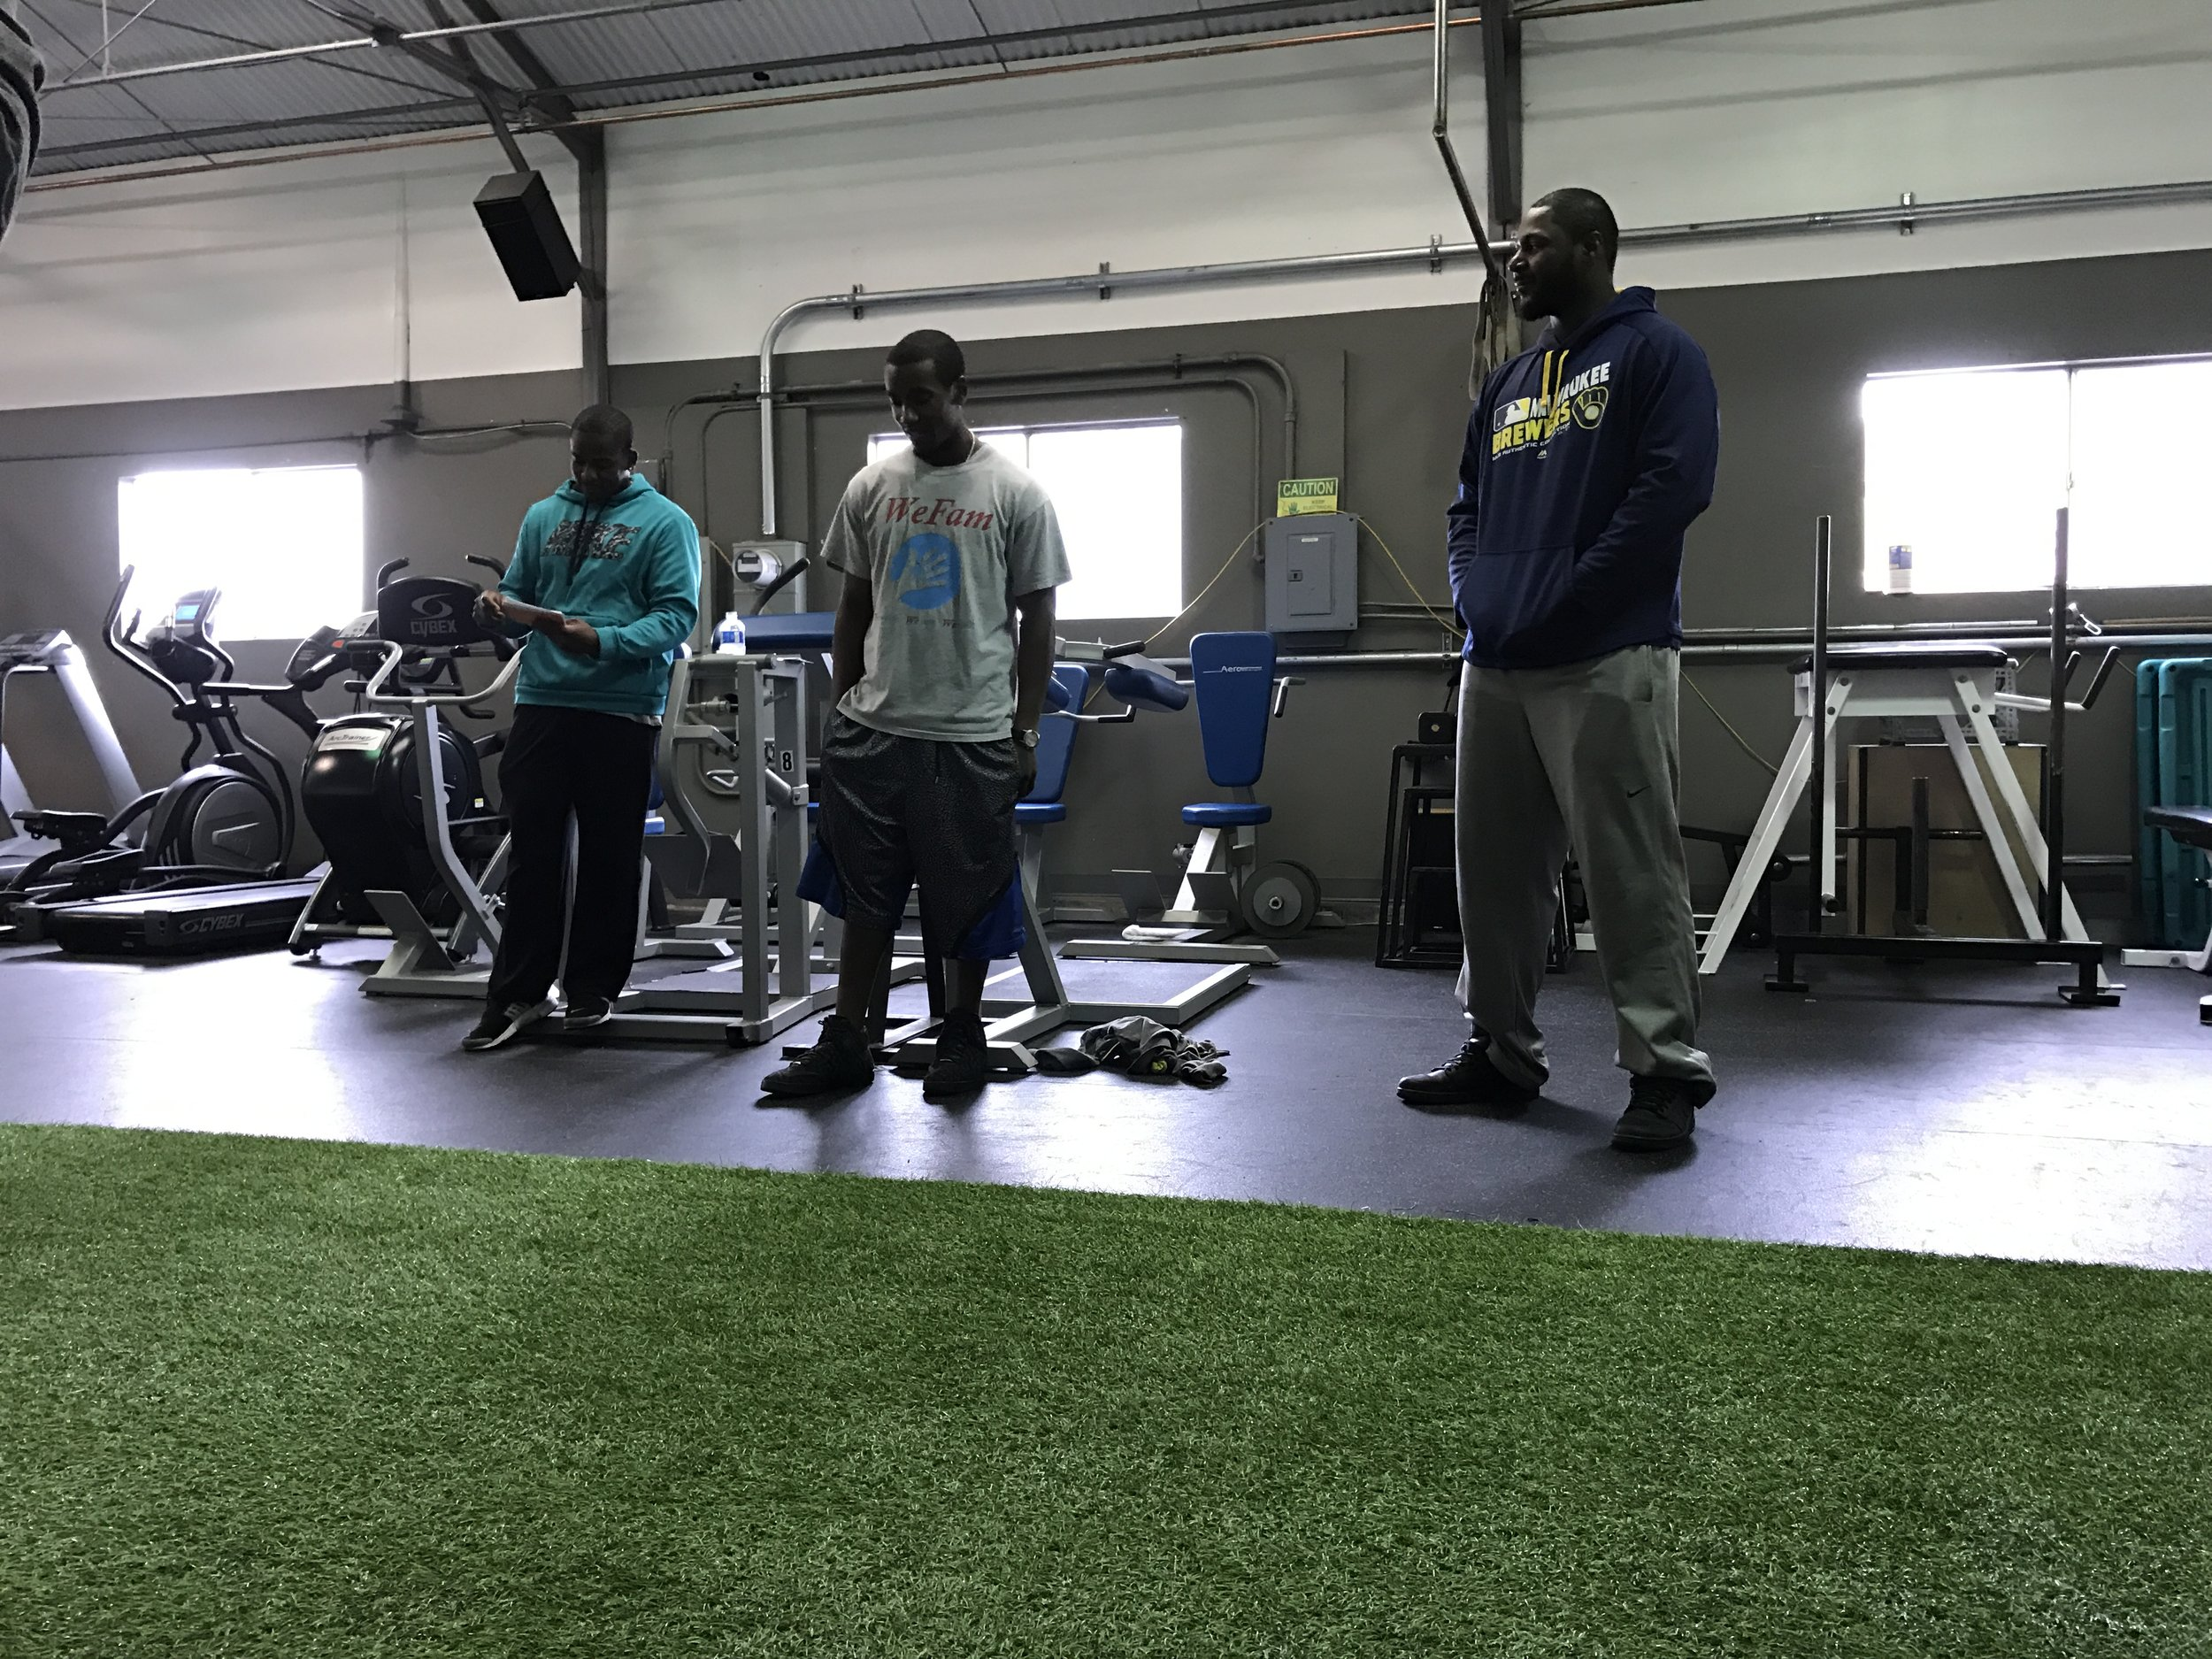 Train like the best. - With personal and group training options, AG Fitness will help you accomplish your fitness goals. Our facility features all the equipment you need.